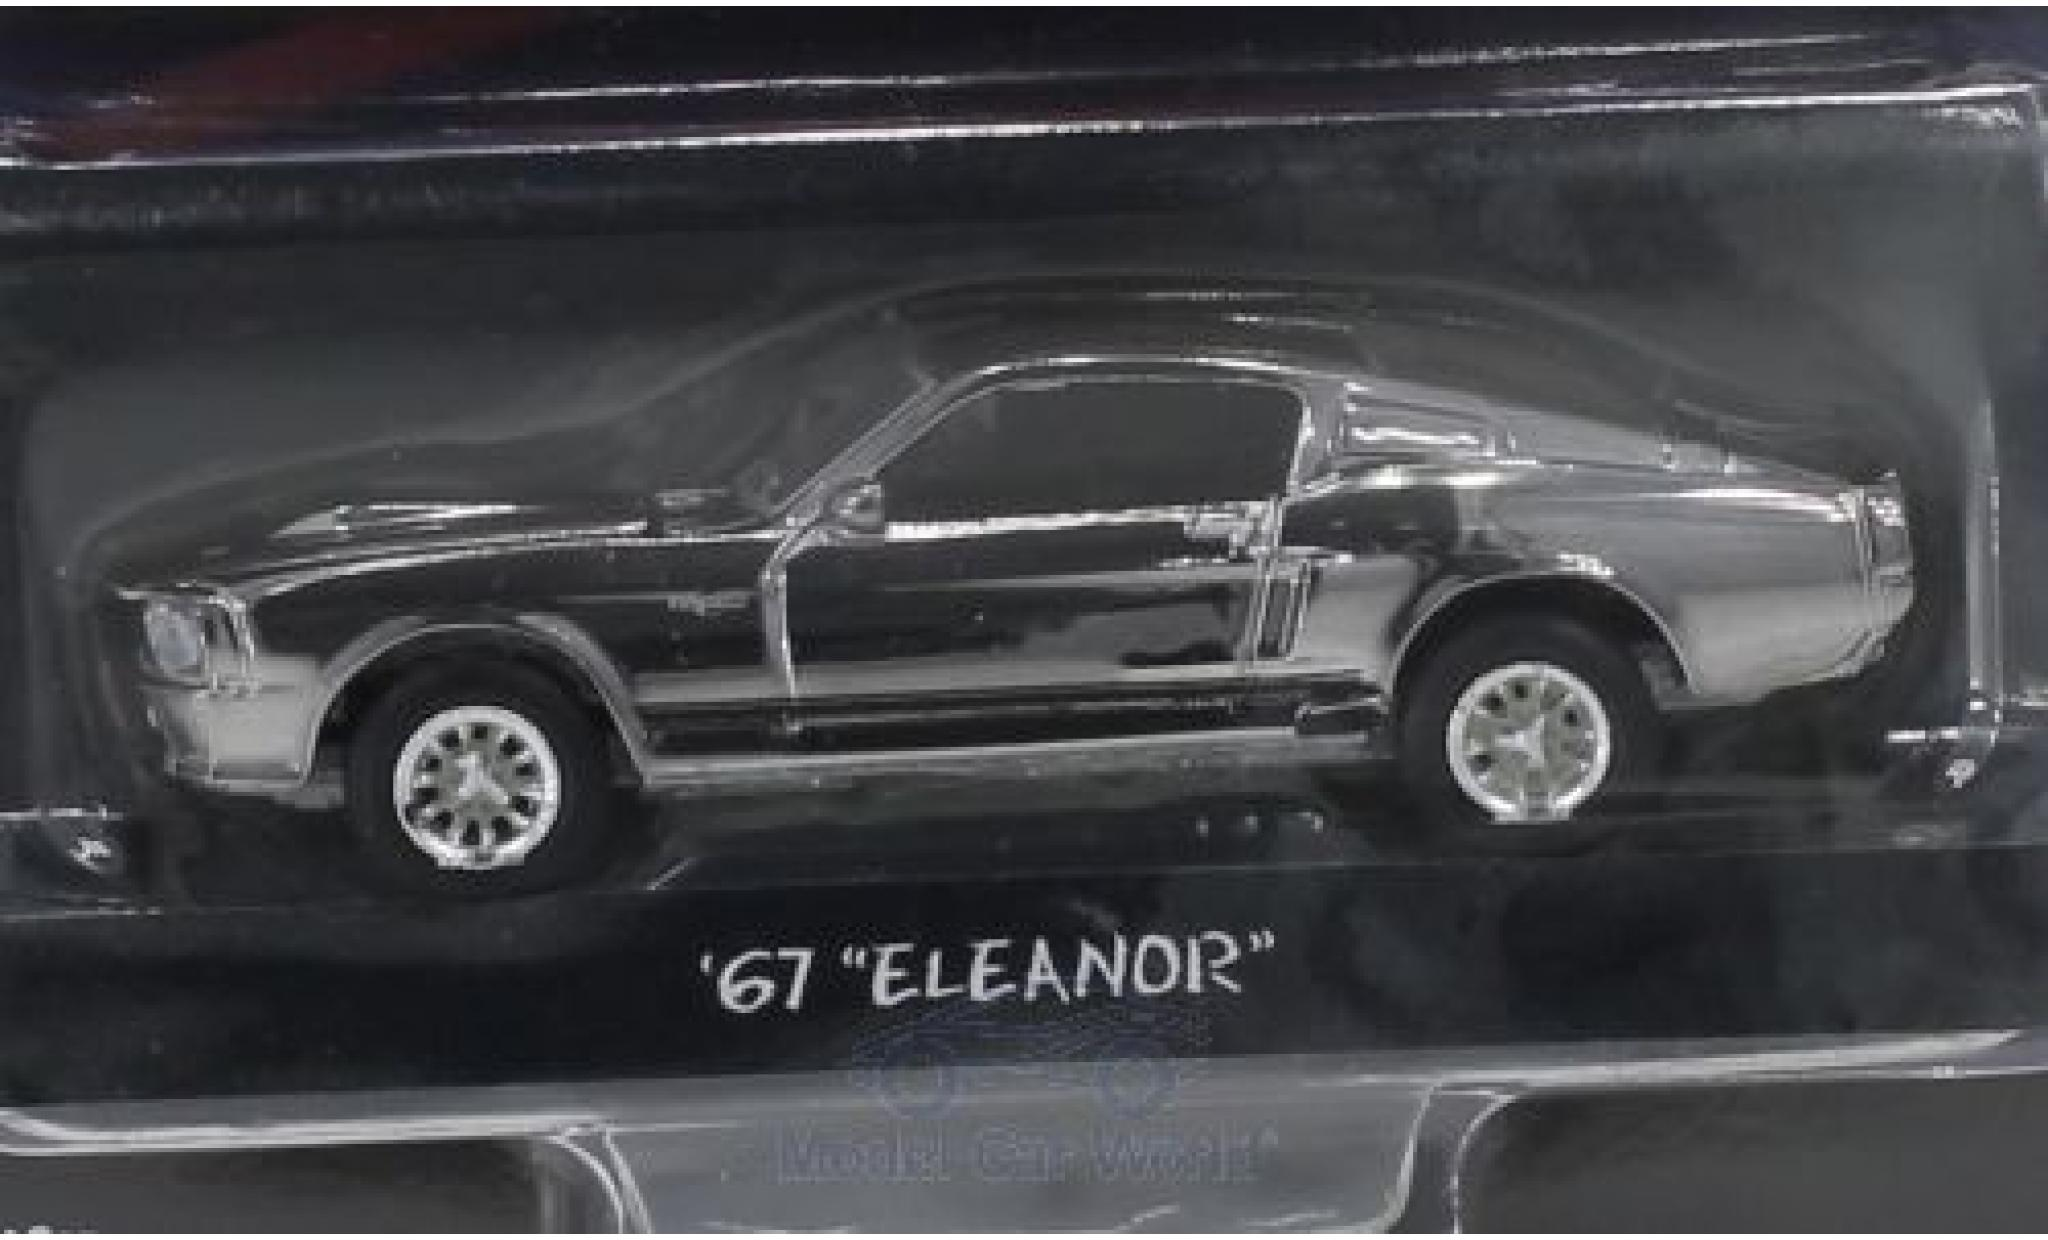 Ford Mustang 1/64 Greenlight Shelby GT500 chrom/noire Gone in 60 Seconds 1967 Eleanor